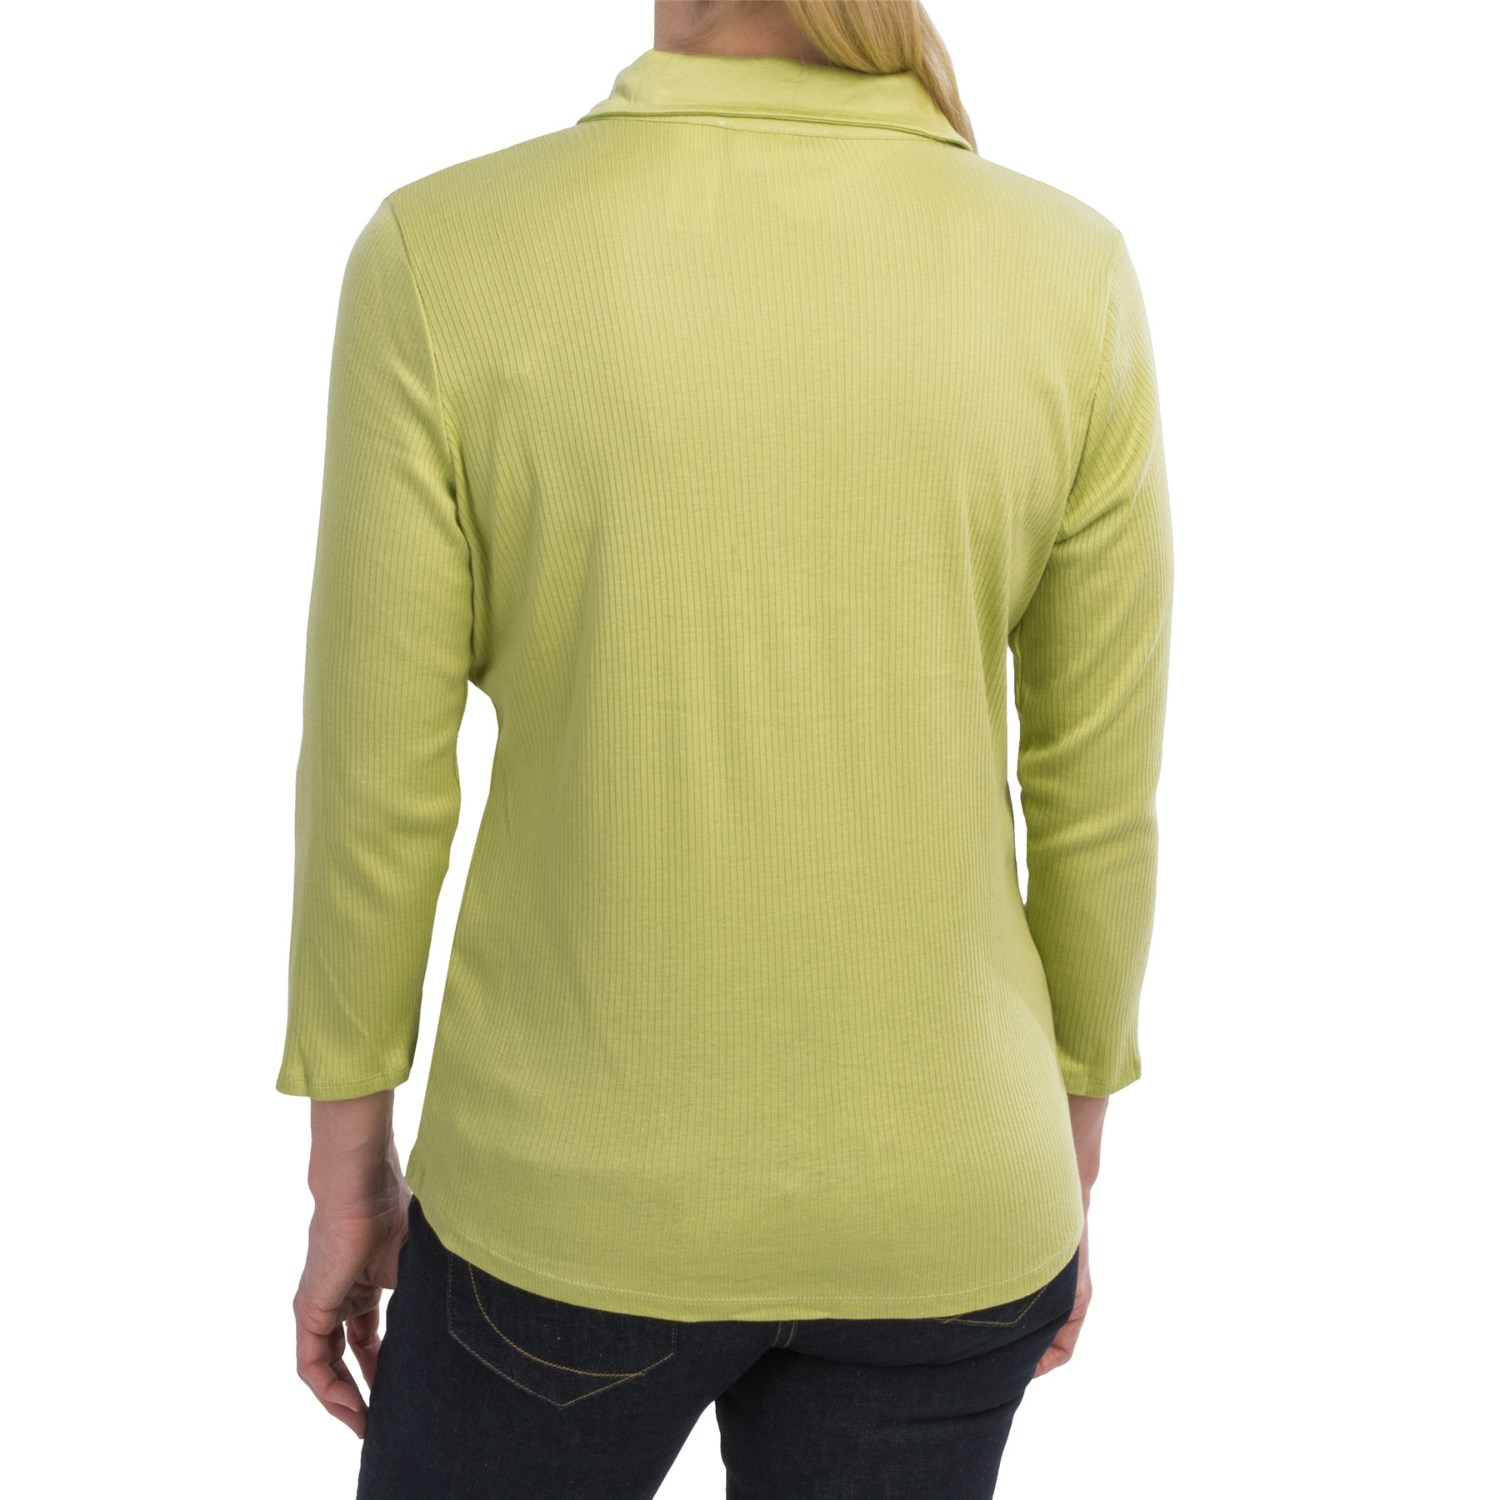 Ribbed knit henley shirt for women 8351k save 76 for 3 4 henley shirt